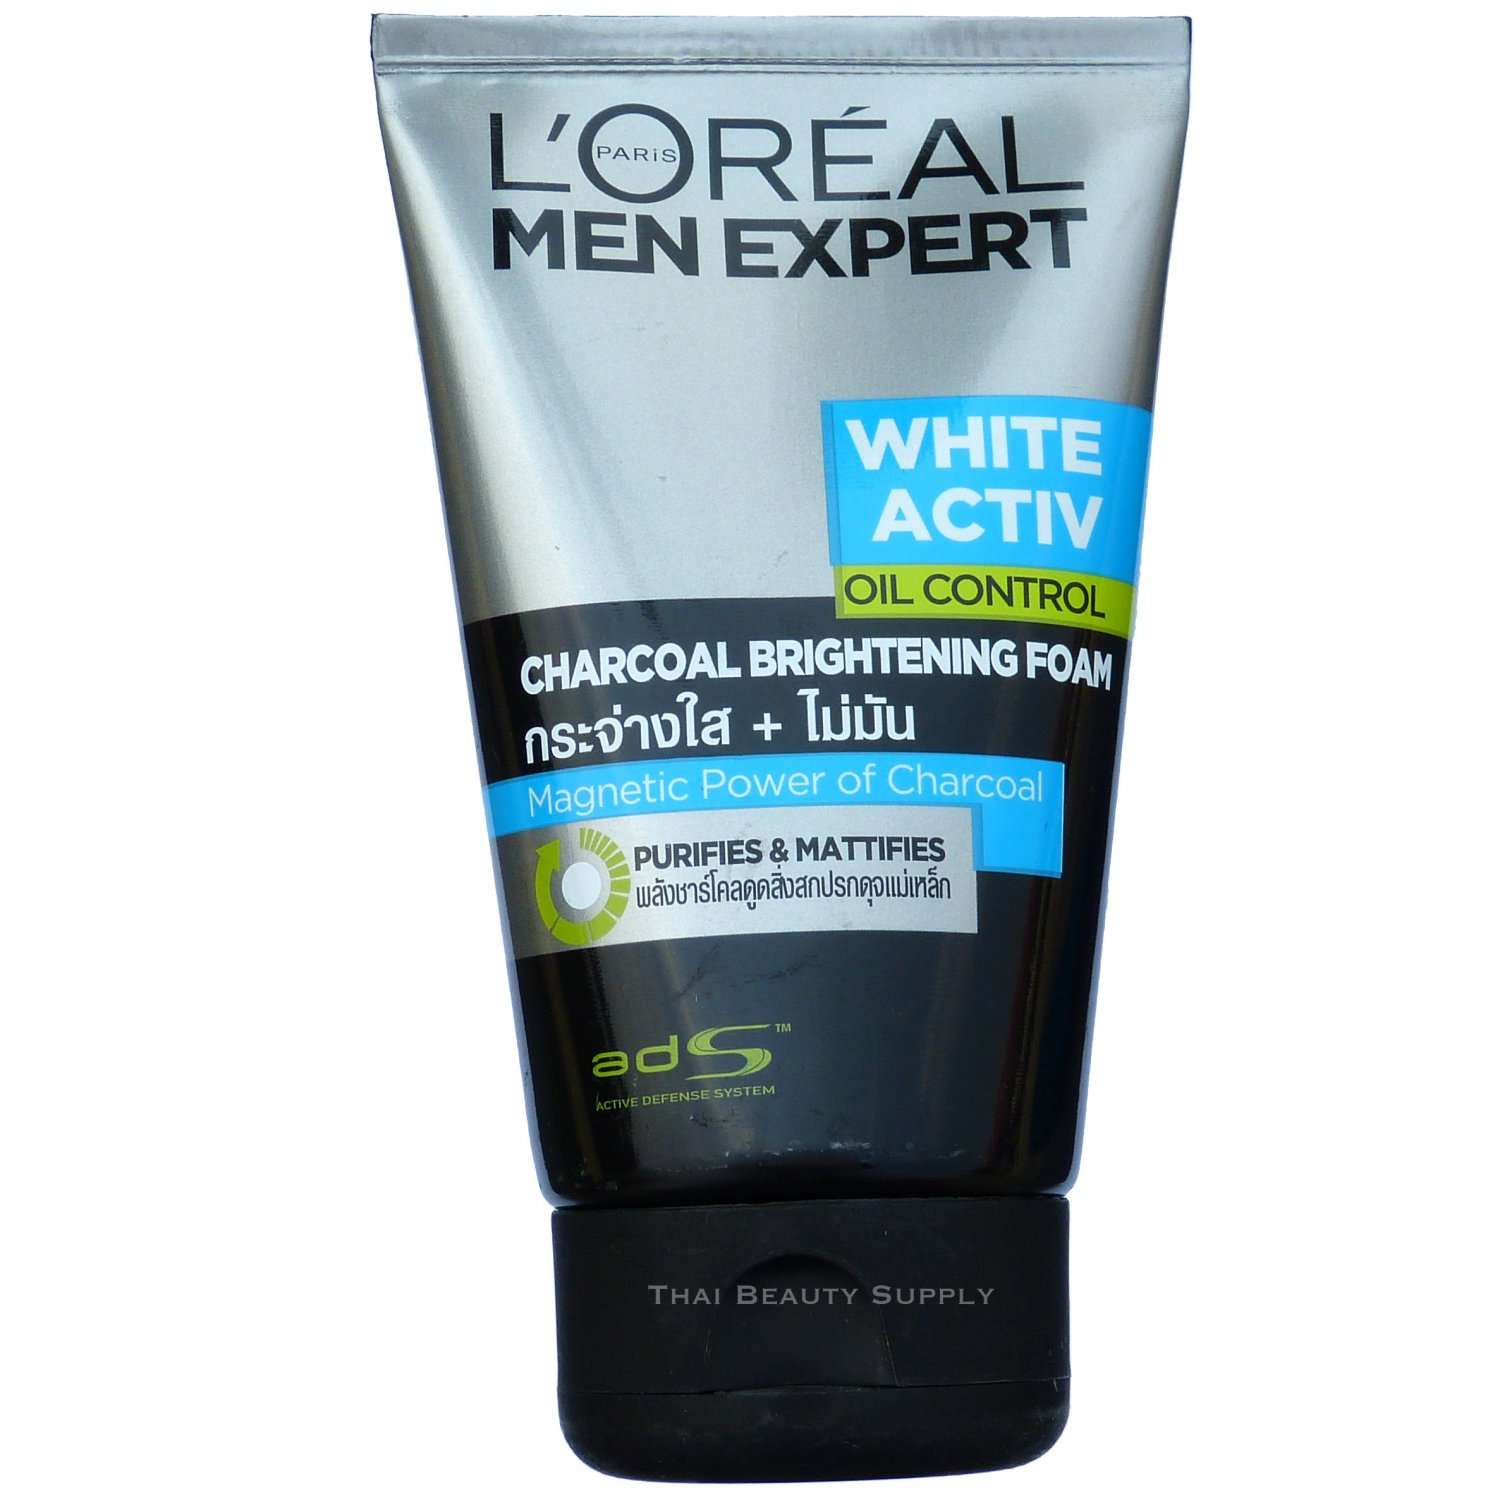 L'Oreal Men Expert White Activ Oil Control Brightening Charcoal Foam 100ml